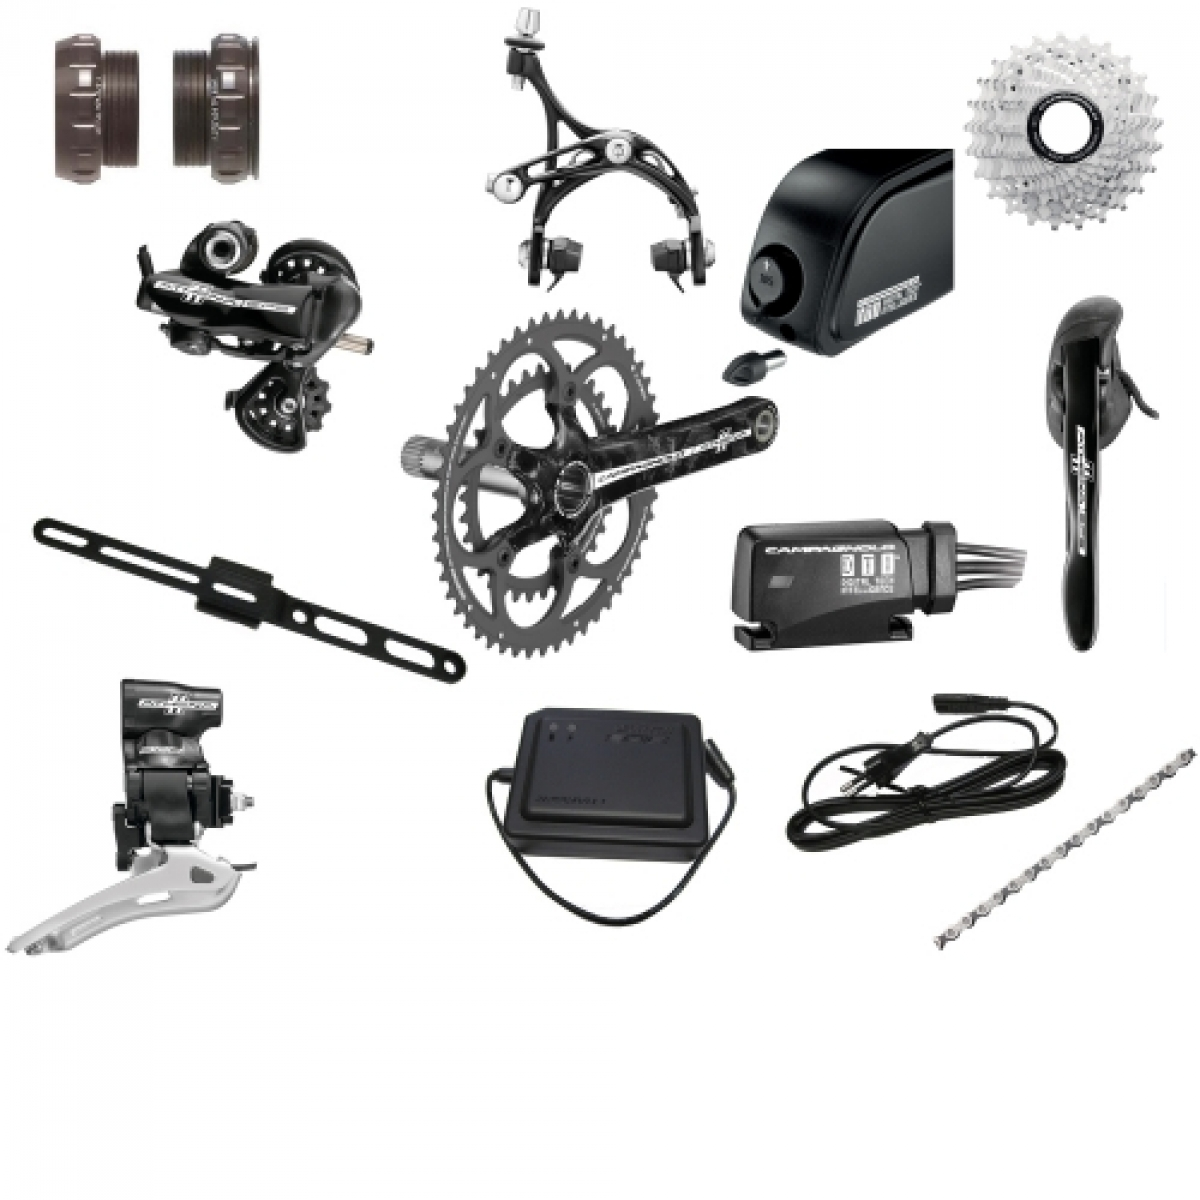 Campagnolo Athena EPS Groupset Group Electronic 14 Piece Kit